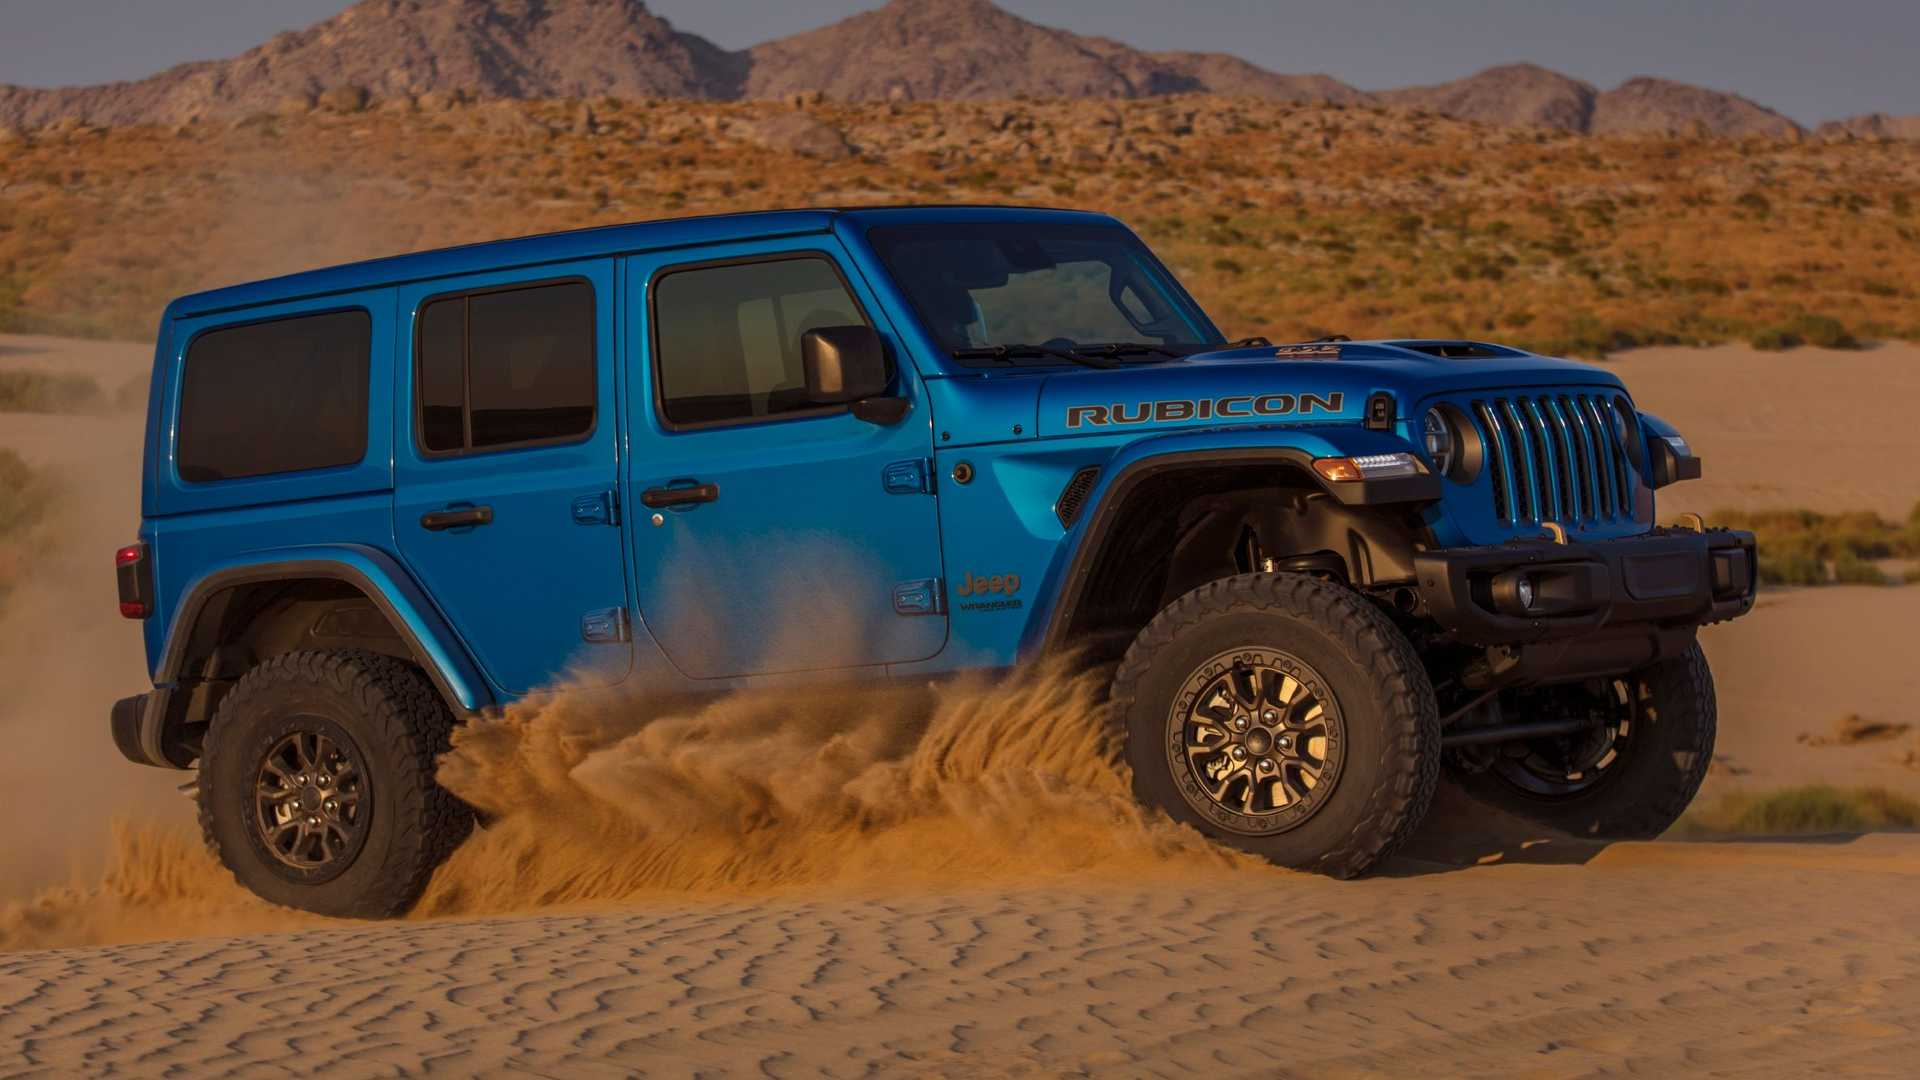 2021-jeep-wrangler-rubicon-392-side-view-3